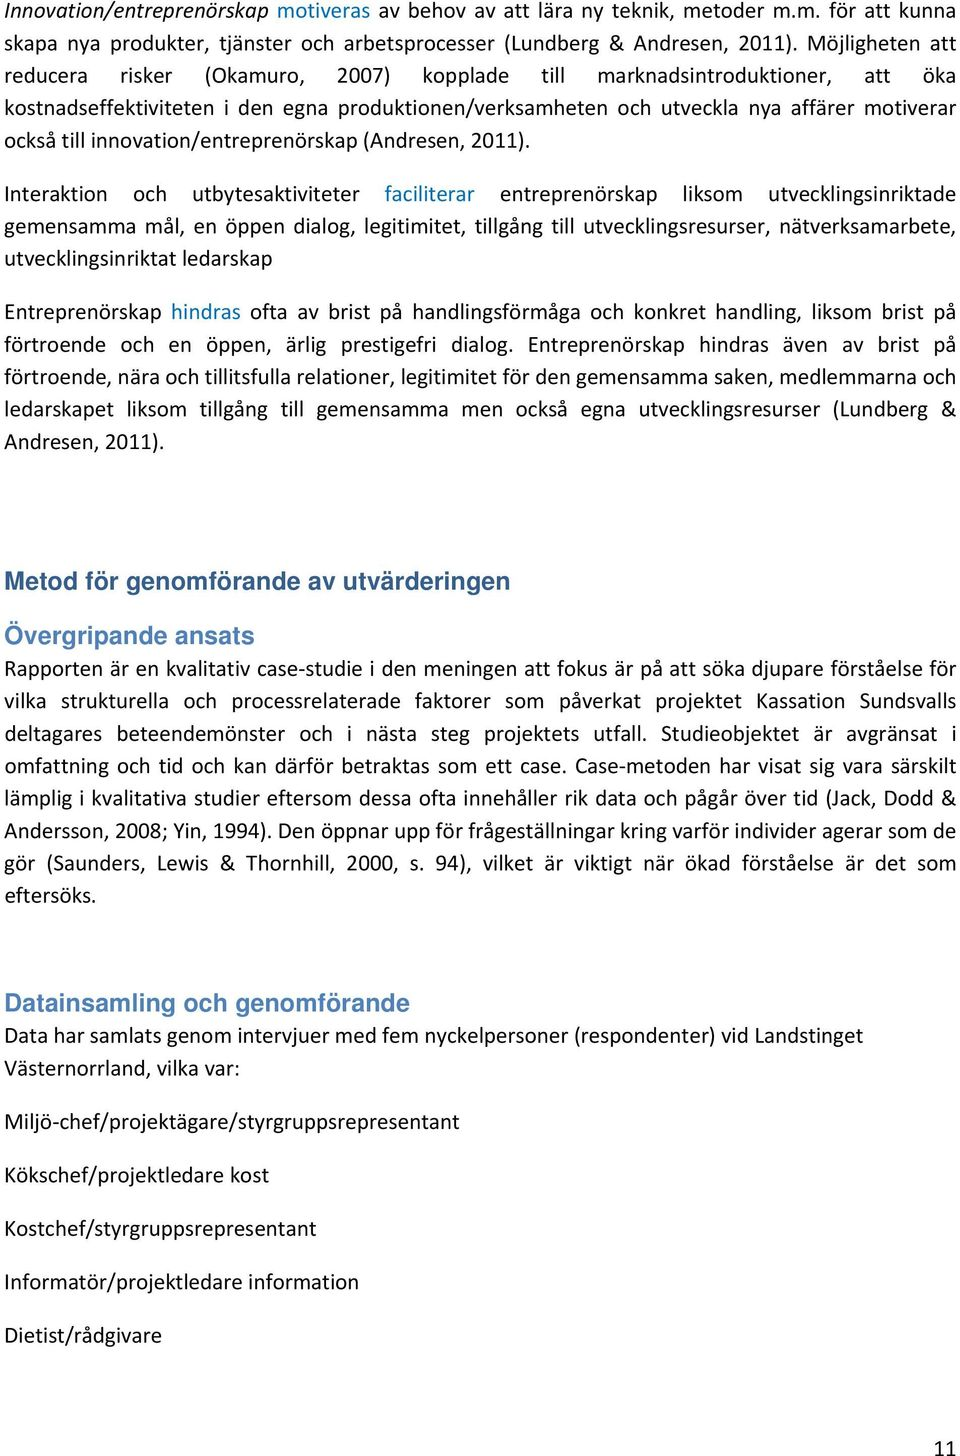 innovation/entreprenörskap (Andresen, 2011).